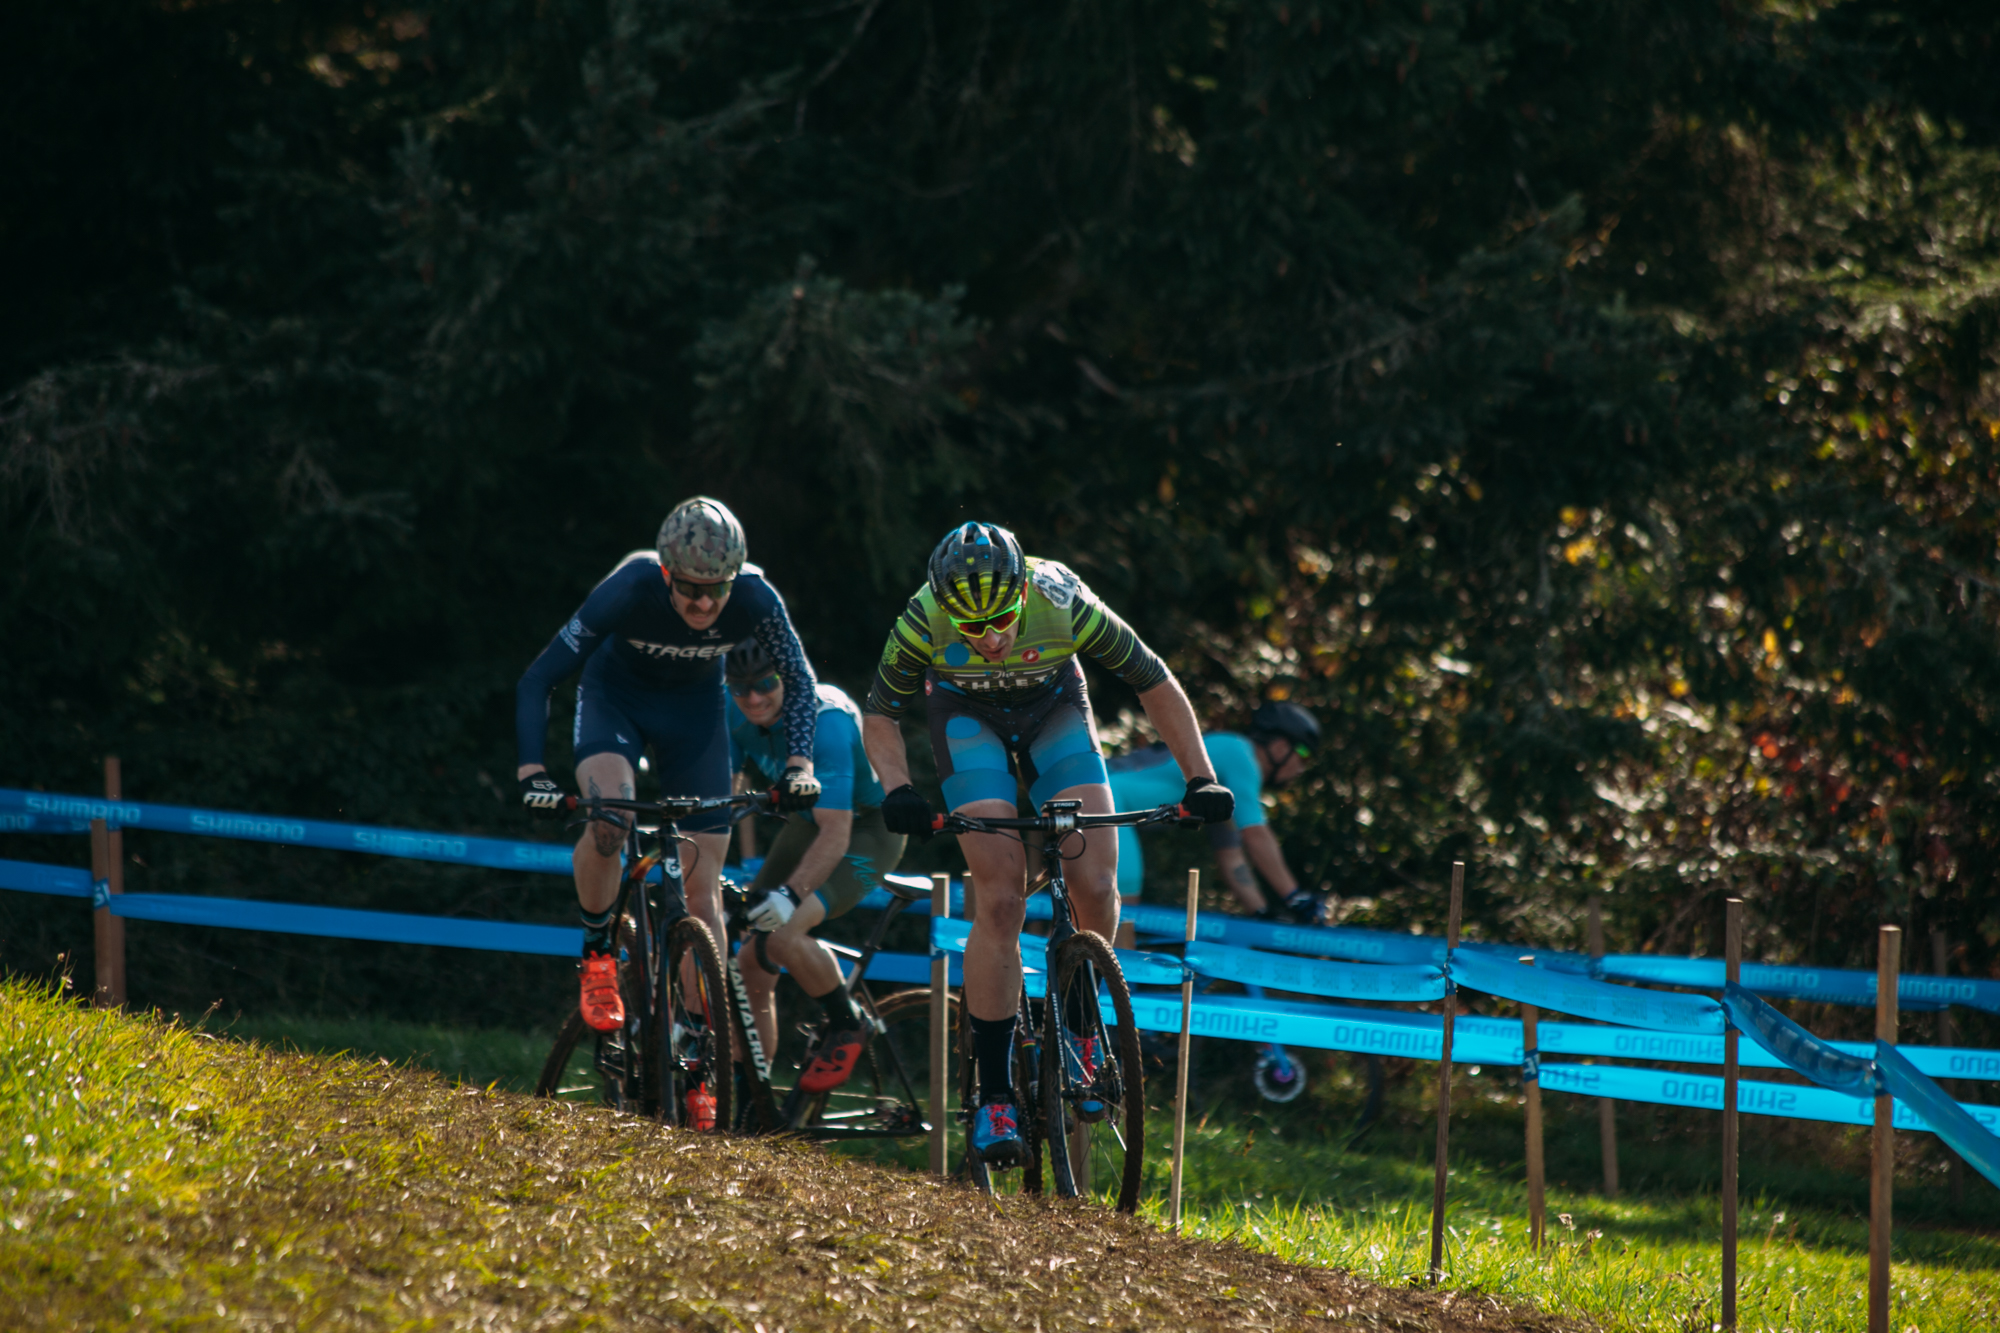 Cyclocross18_CCCX_RainierHS-76-mettlecycling.jpg